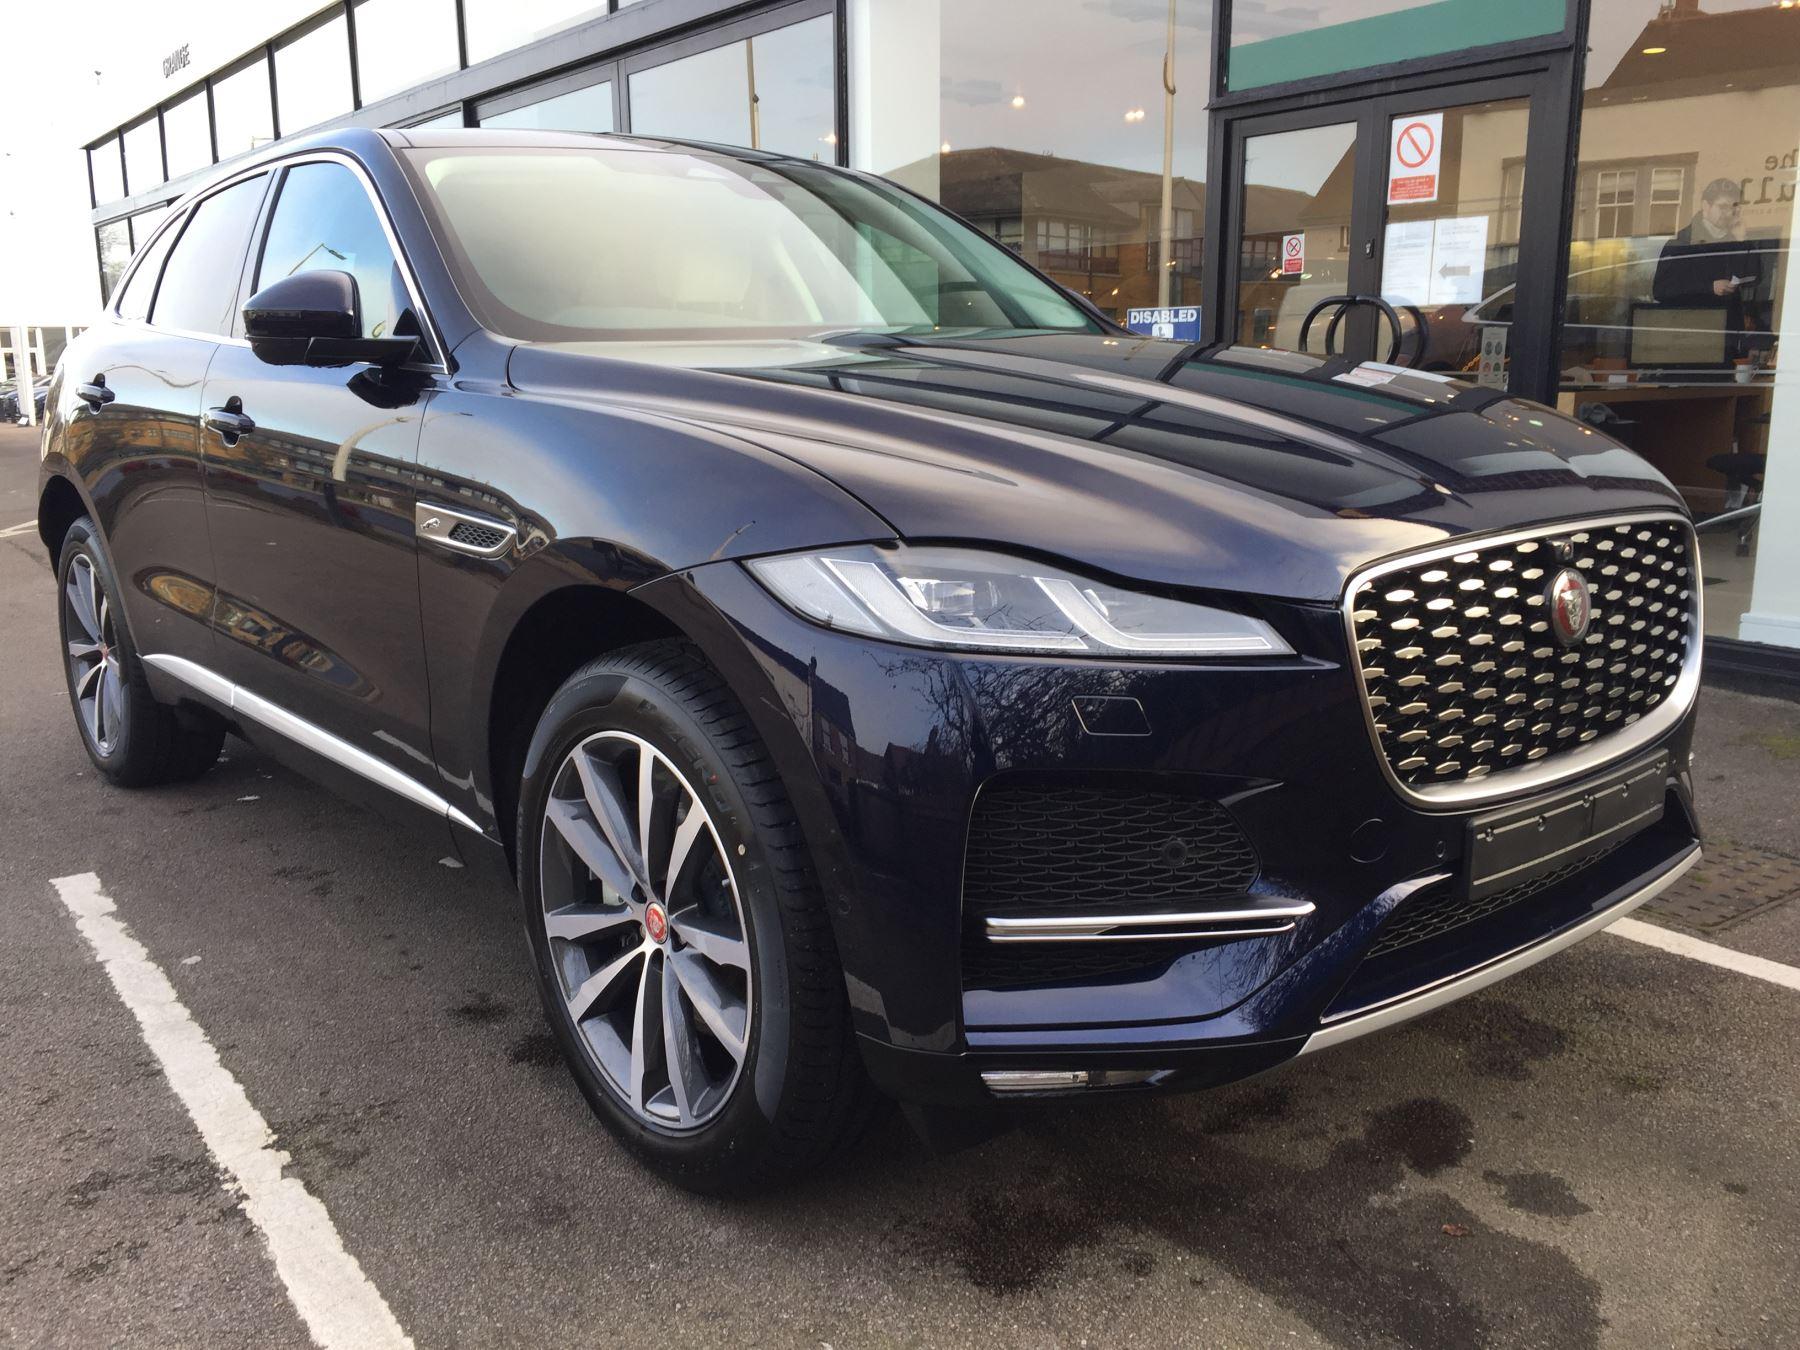 Jaguar F-PACE Contact us today and ask about our great offers on Cars for early delivery.  Automatic 5 door Hatchback